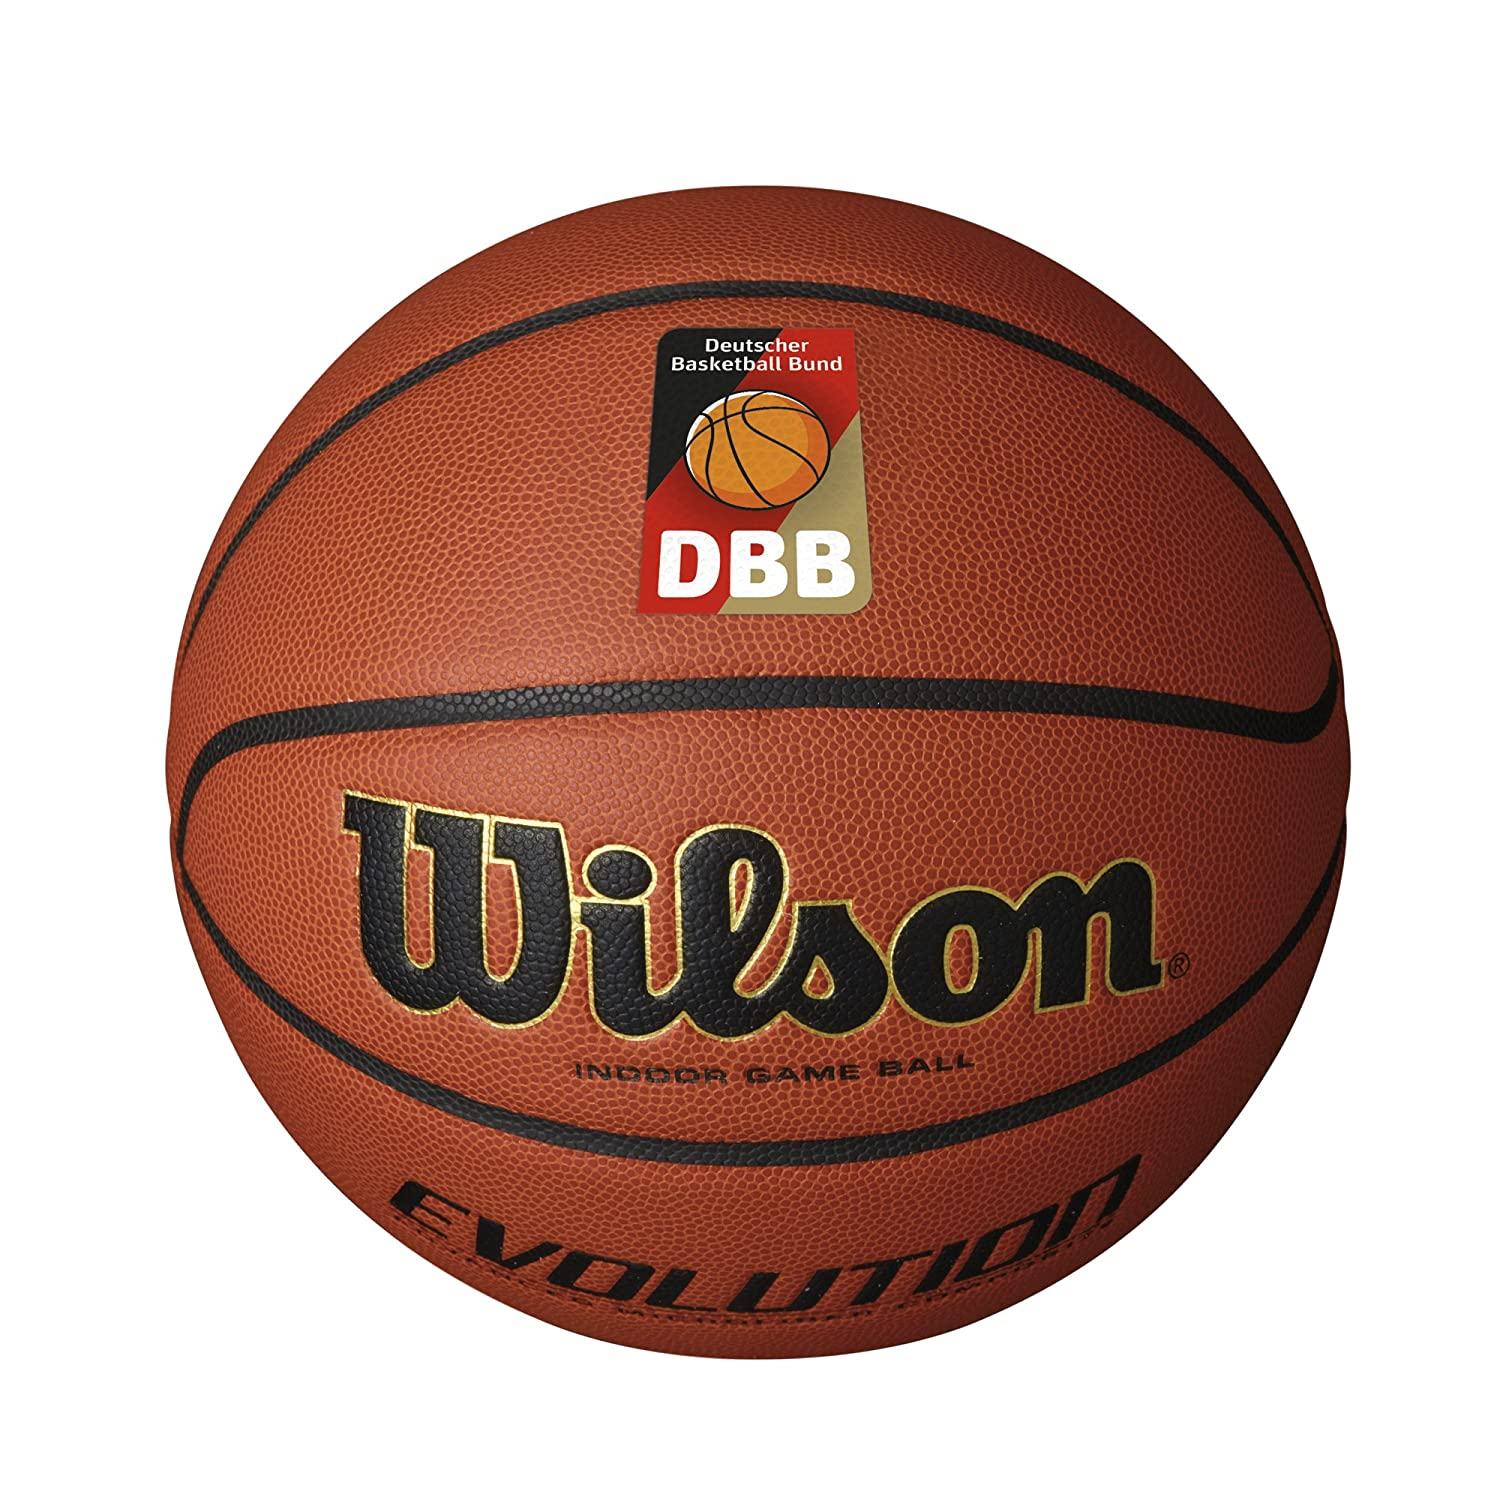 Wilson Evolution Dbb Official Balón para Basketball, Unisex Adulto ...